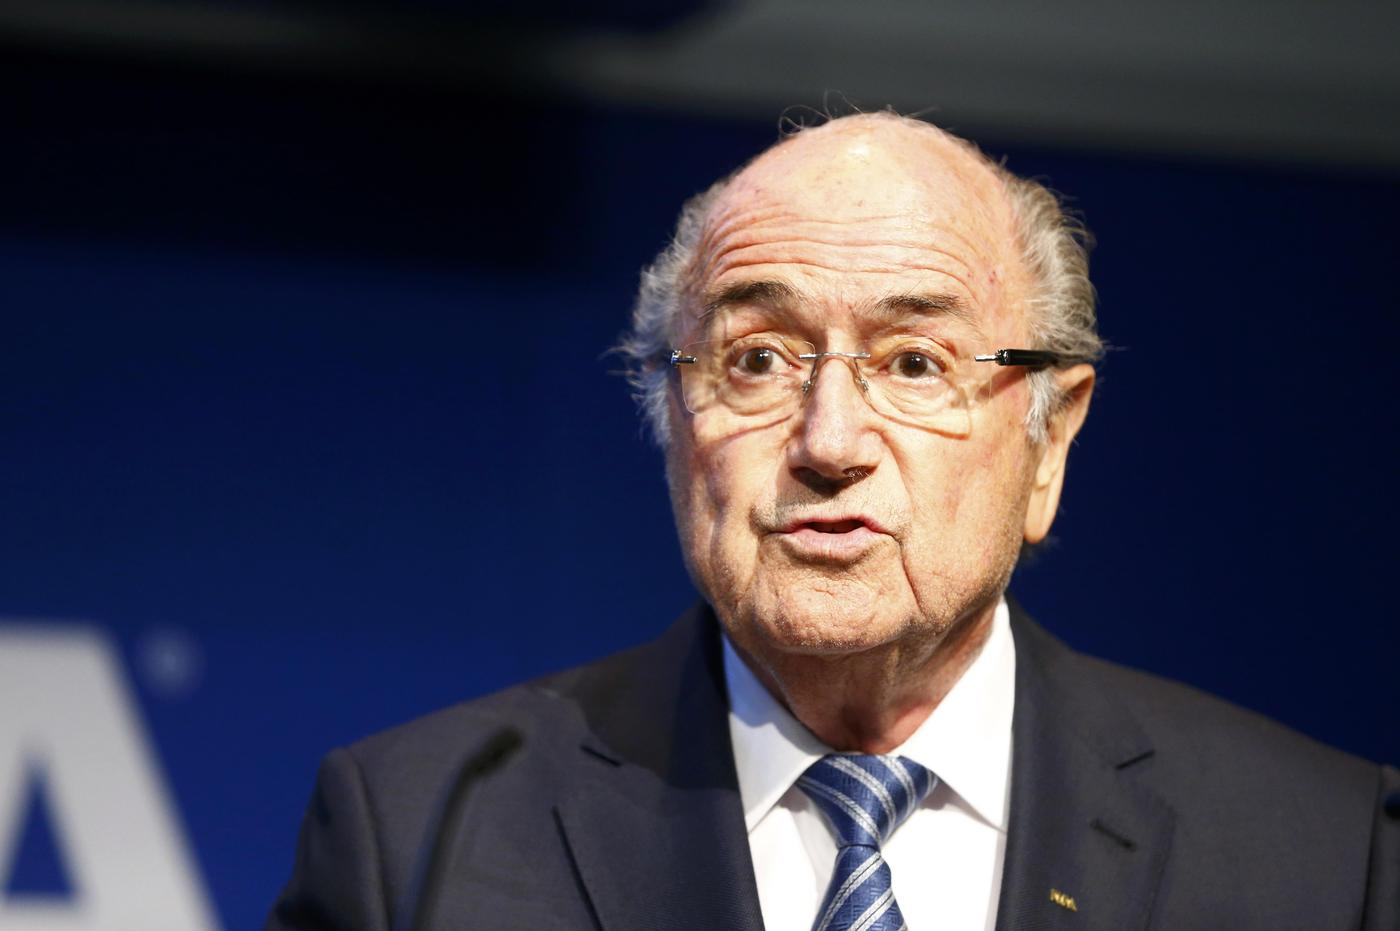 'I was close to dying,' says Fifa president Sepp Blatter